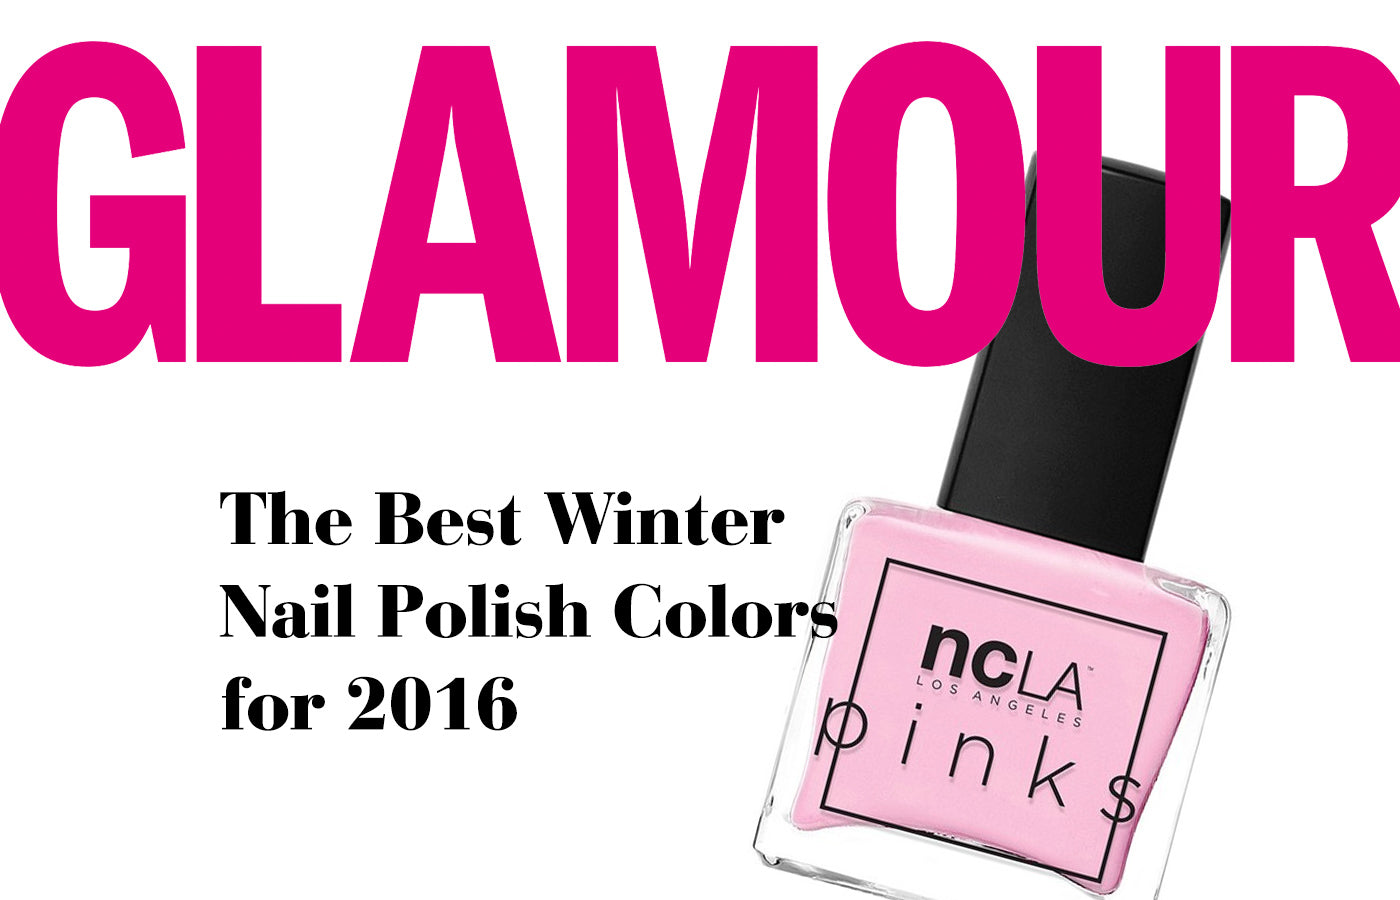 Glamour: The Best Winter Nail Polish Colors for 2016 – shopncla